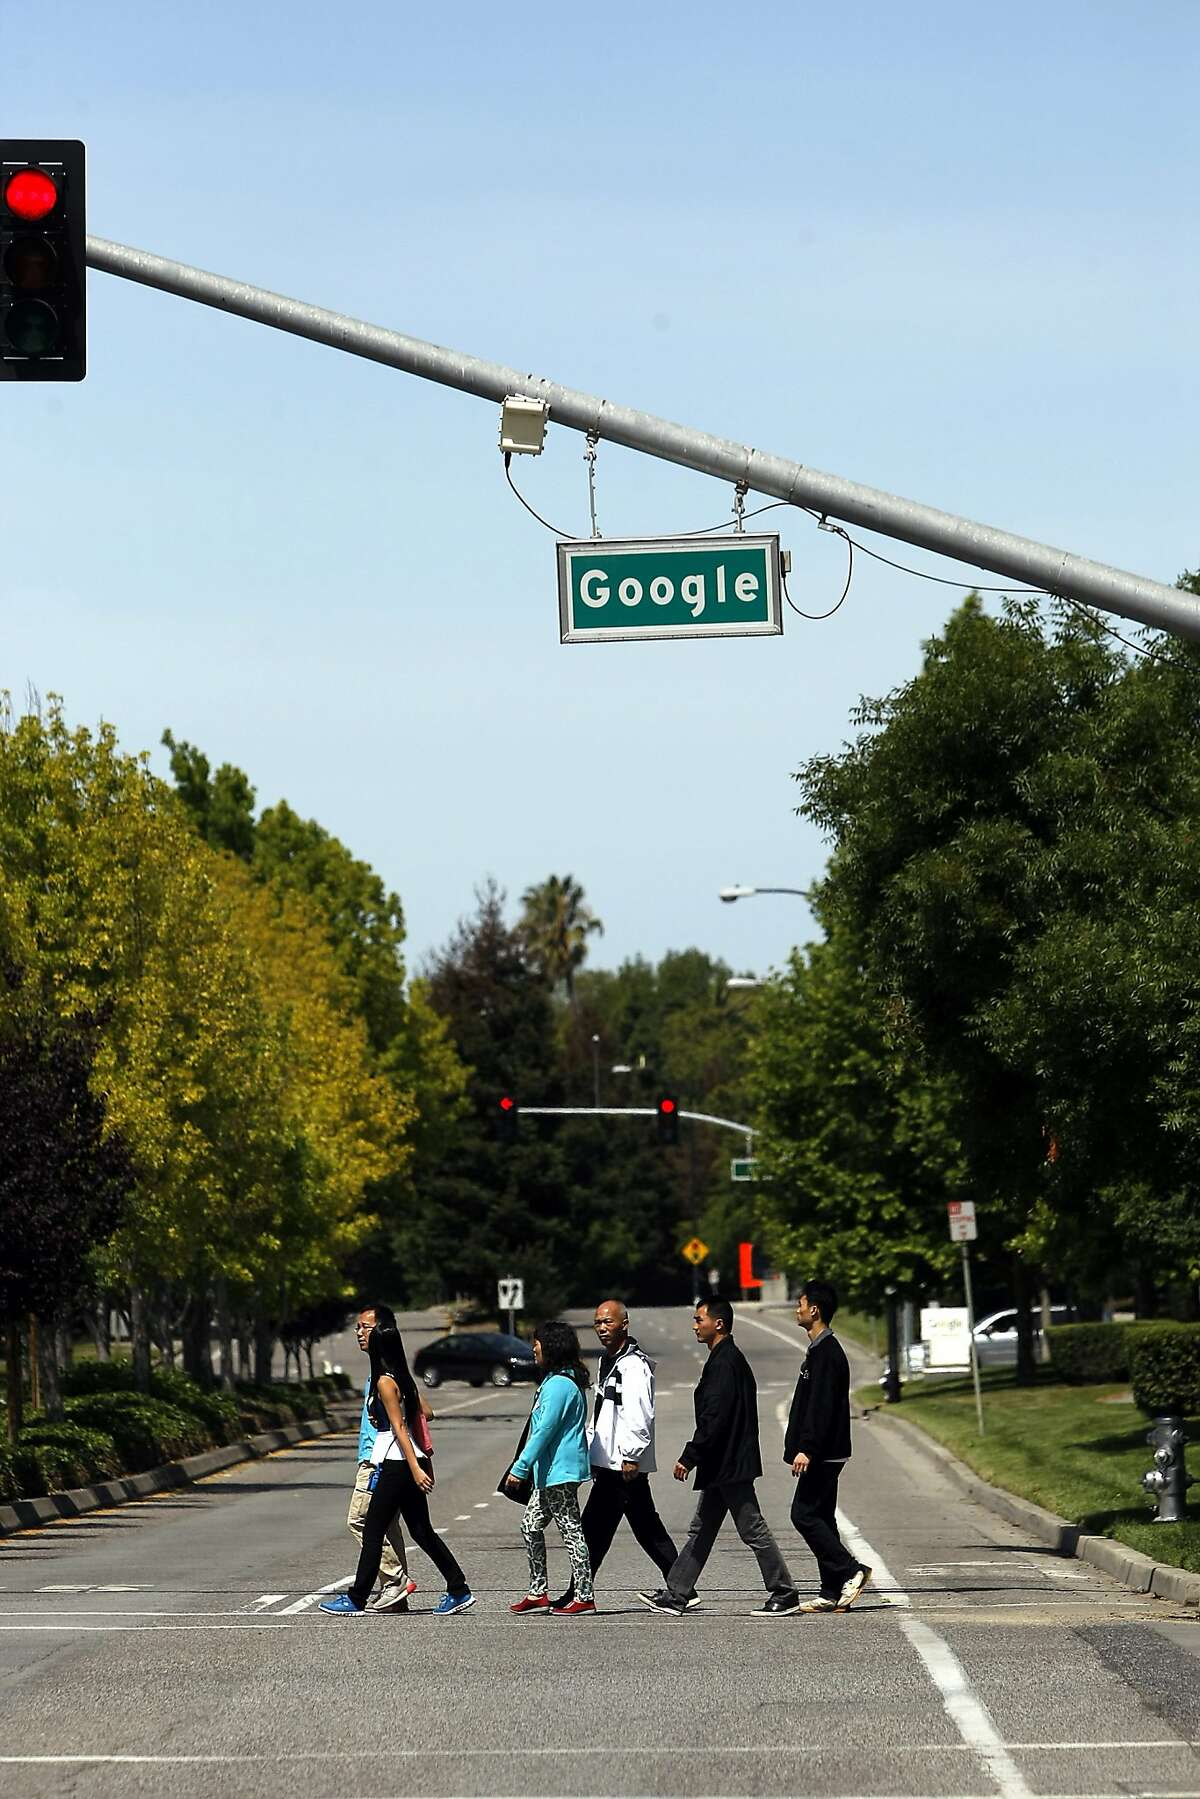 A group of tourists crosses Charleston Rd. under a Google street sign on the Googleplex campus in Mountain View, CA, Saturday May 24, 2014.